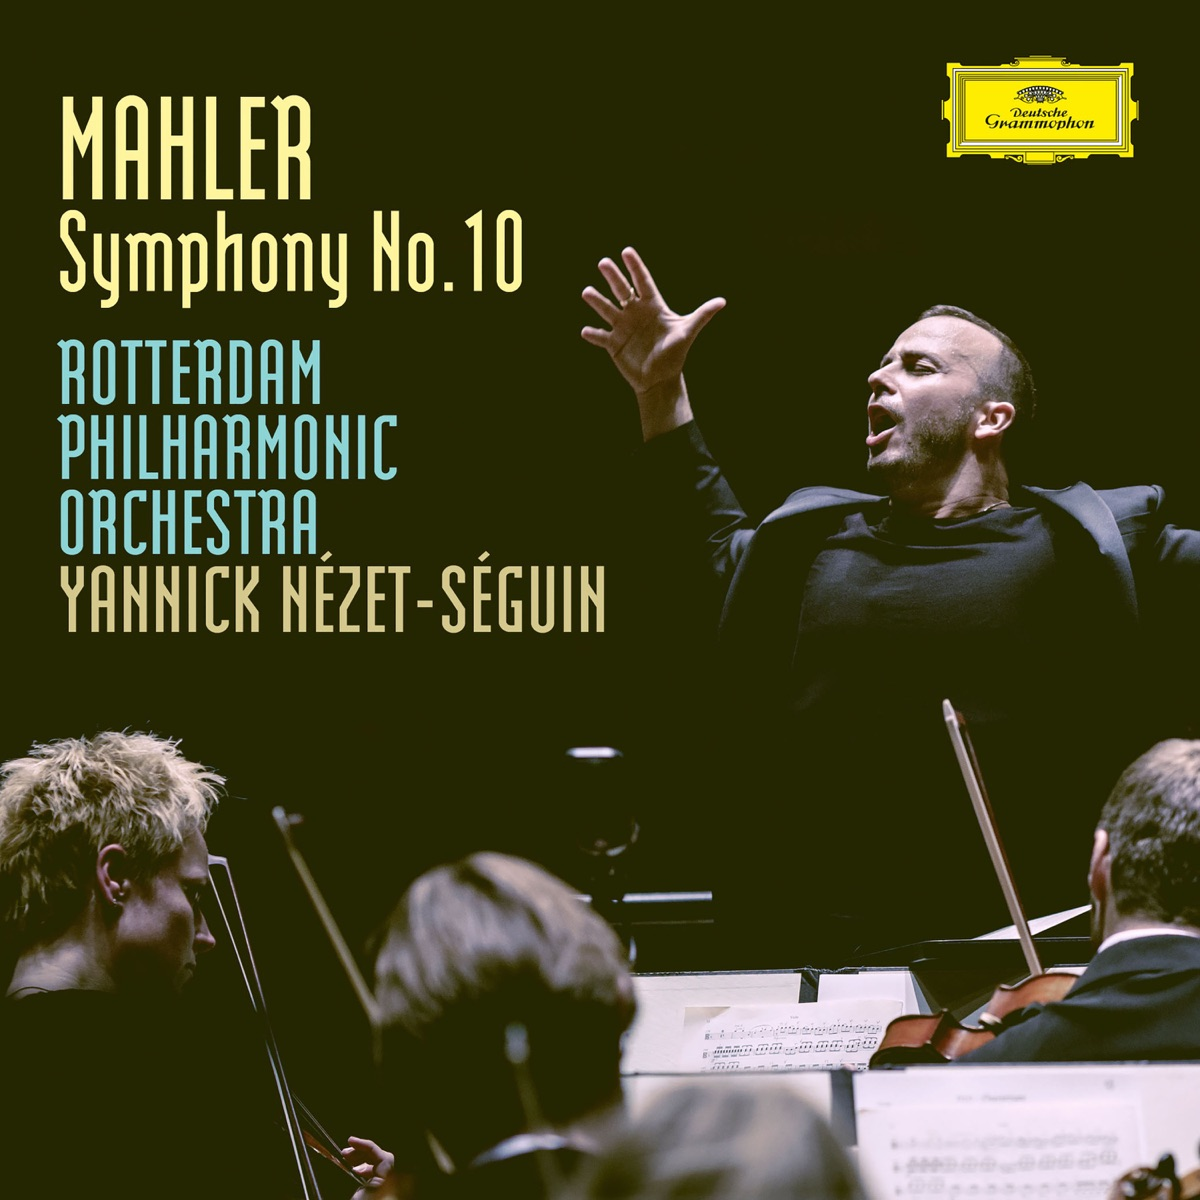 Mahler Symphony No10 In F Sharp Unfinished - Ed Deryck Cooke Rotterdam Philharmonic Orchestra  Yannick Nézet-Séguin CD cover